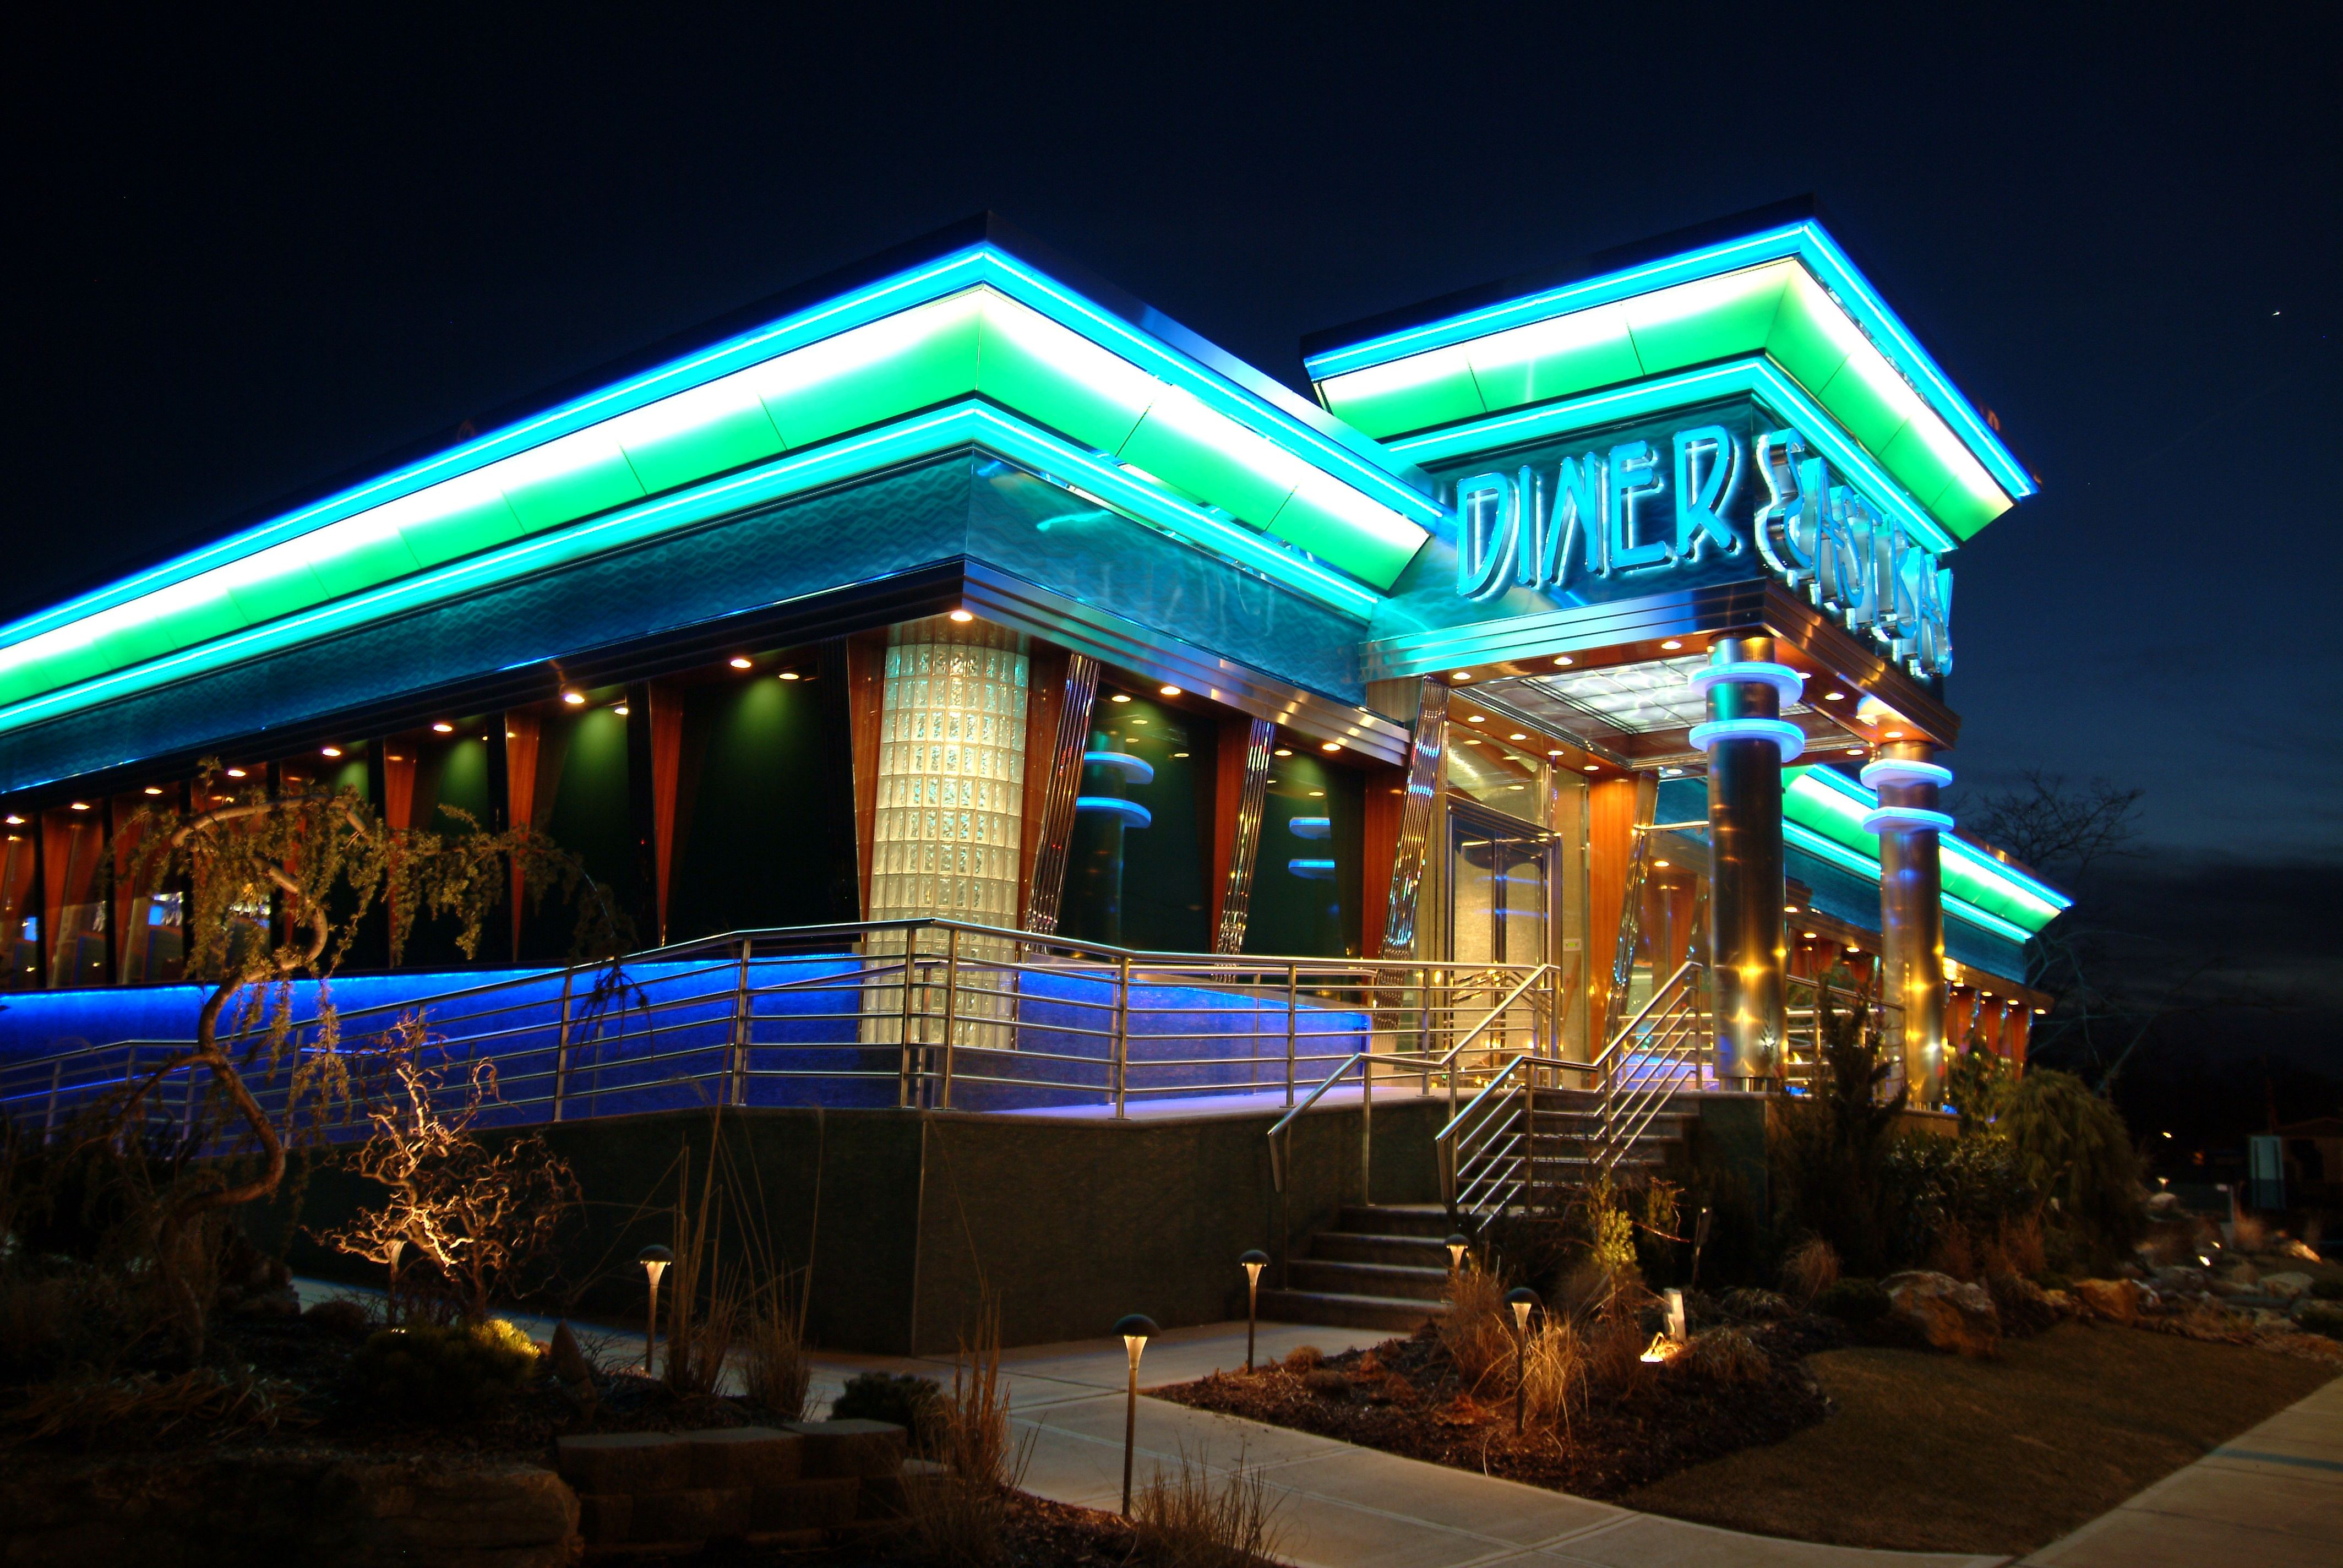 The East Bay Diner In Wantagh Ny Is A Green Diner With A Retro Underwater Feel The Exterior Is Just The Introducti With Images Commercial Design House Styles Exterior